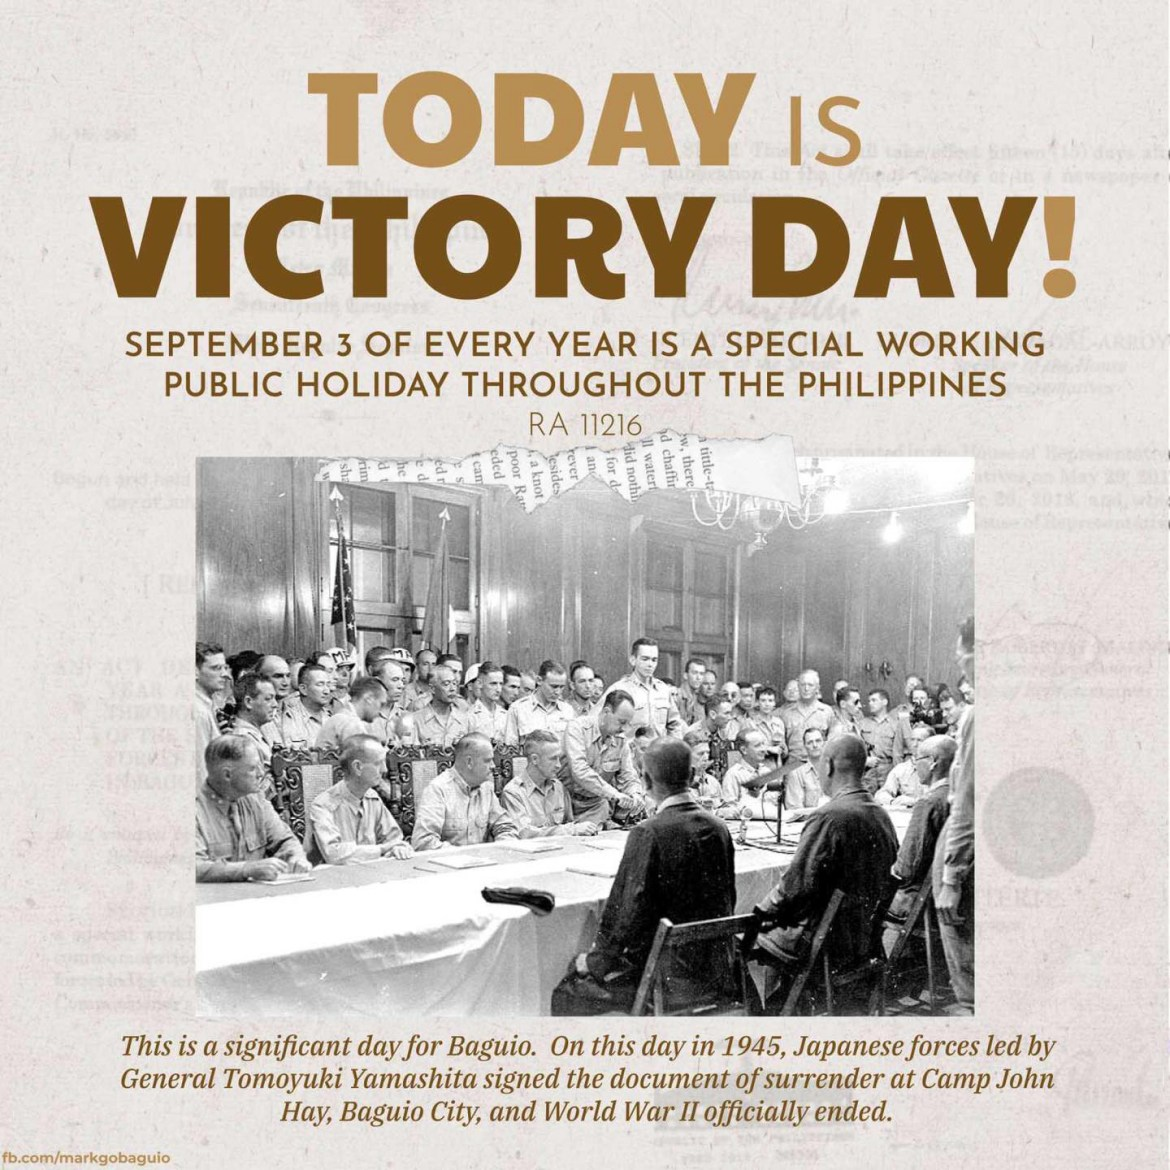 September 3 is 'Victory Day'